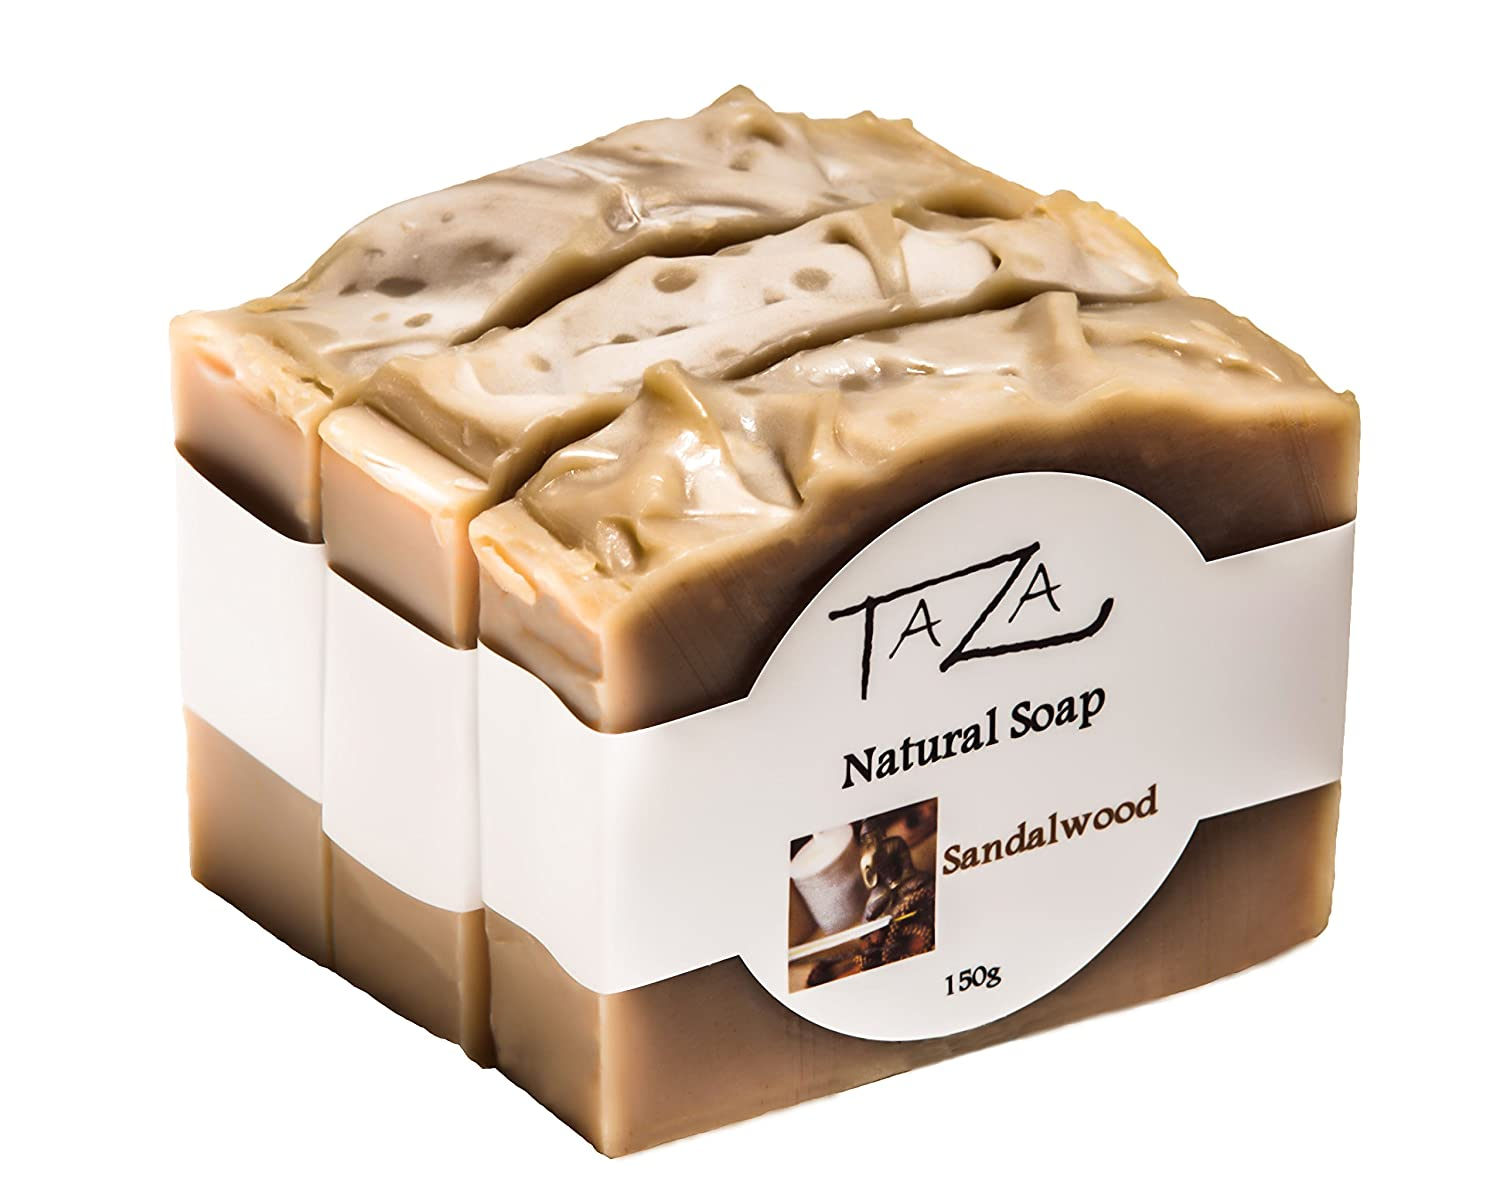 Premium Taza Sandalwood Natural Soap (Pack of 3) Each 5.3 oz (150 g) ♦ For Radiant Glowing Skin ♦ Contains: Coconut, Olive, and Palm Fruit Oils, Mango Seed Butter, Sandalwood Powder, Kaolin Clay Priya Spa